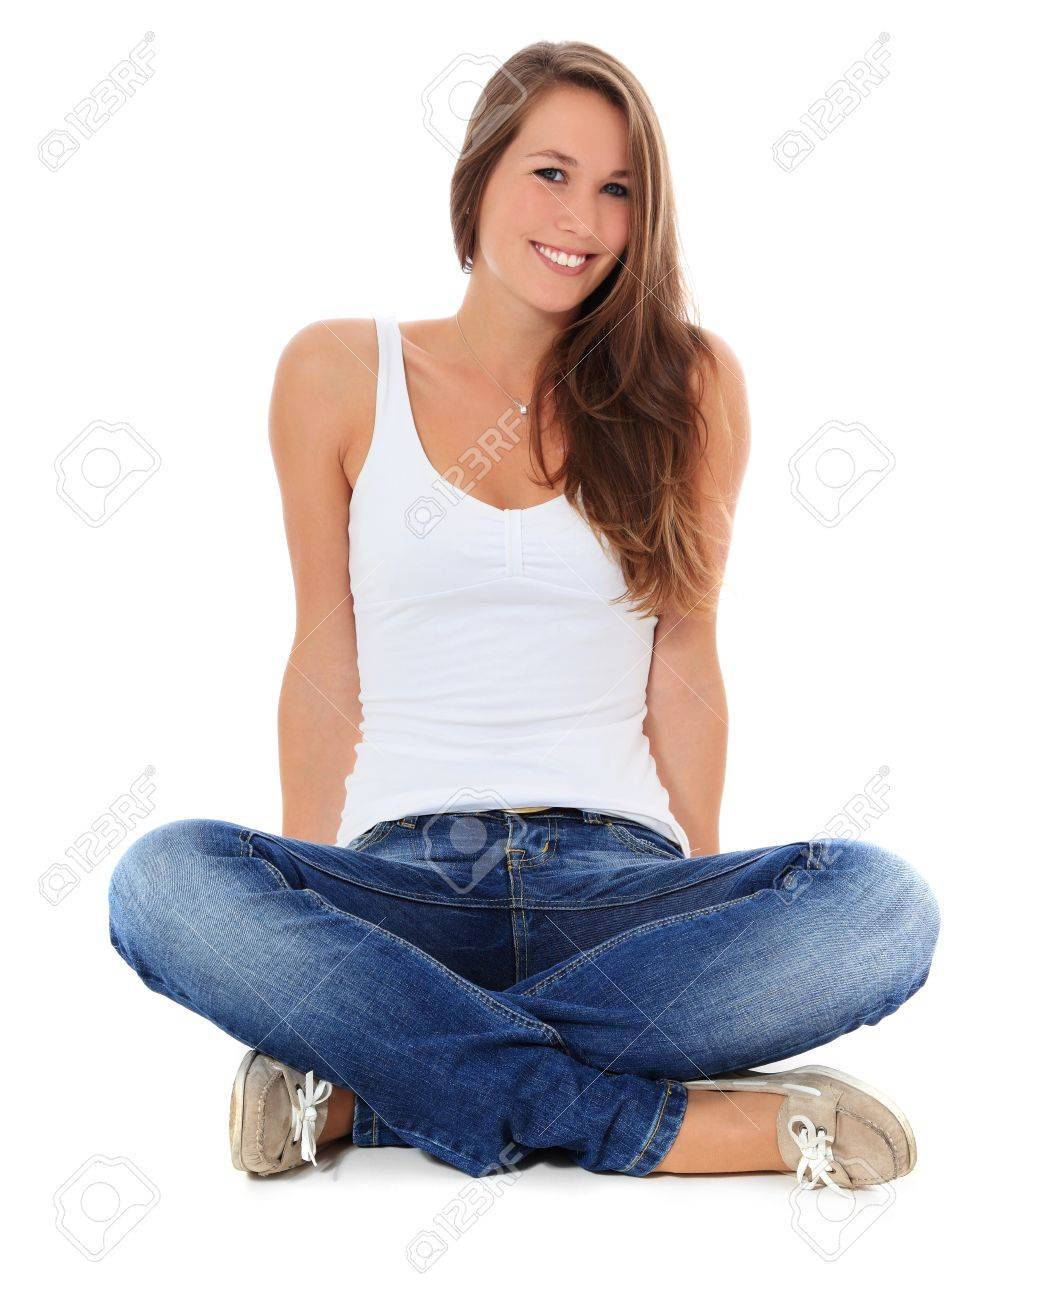 Attractive young woman. All on white background. Stock Photo - 10160197